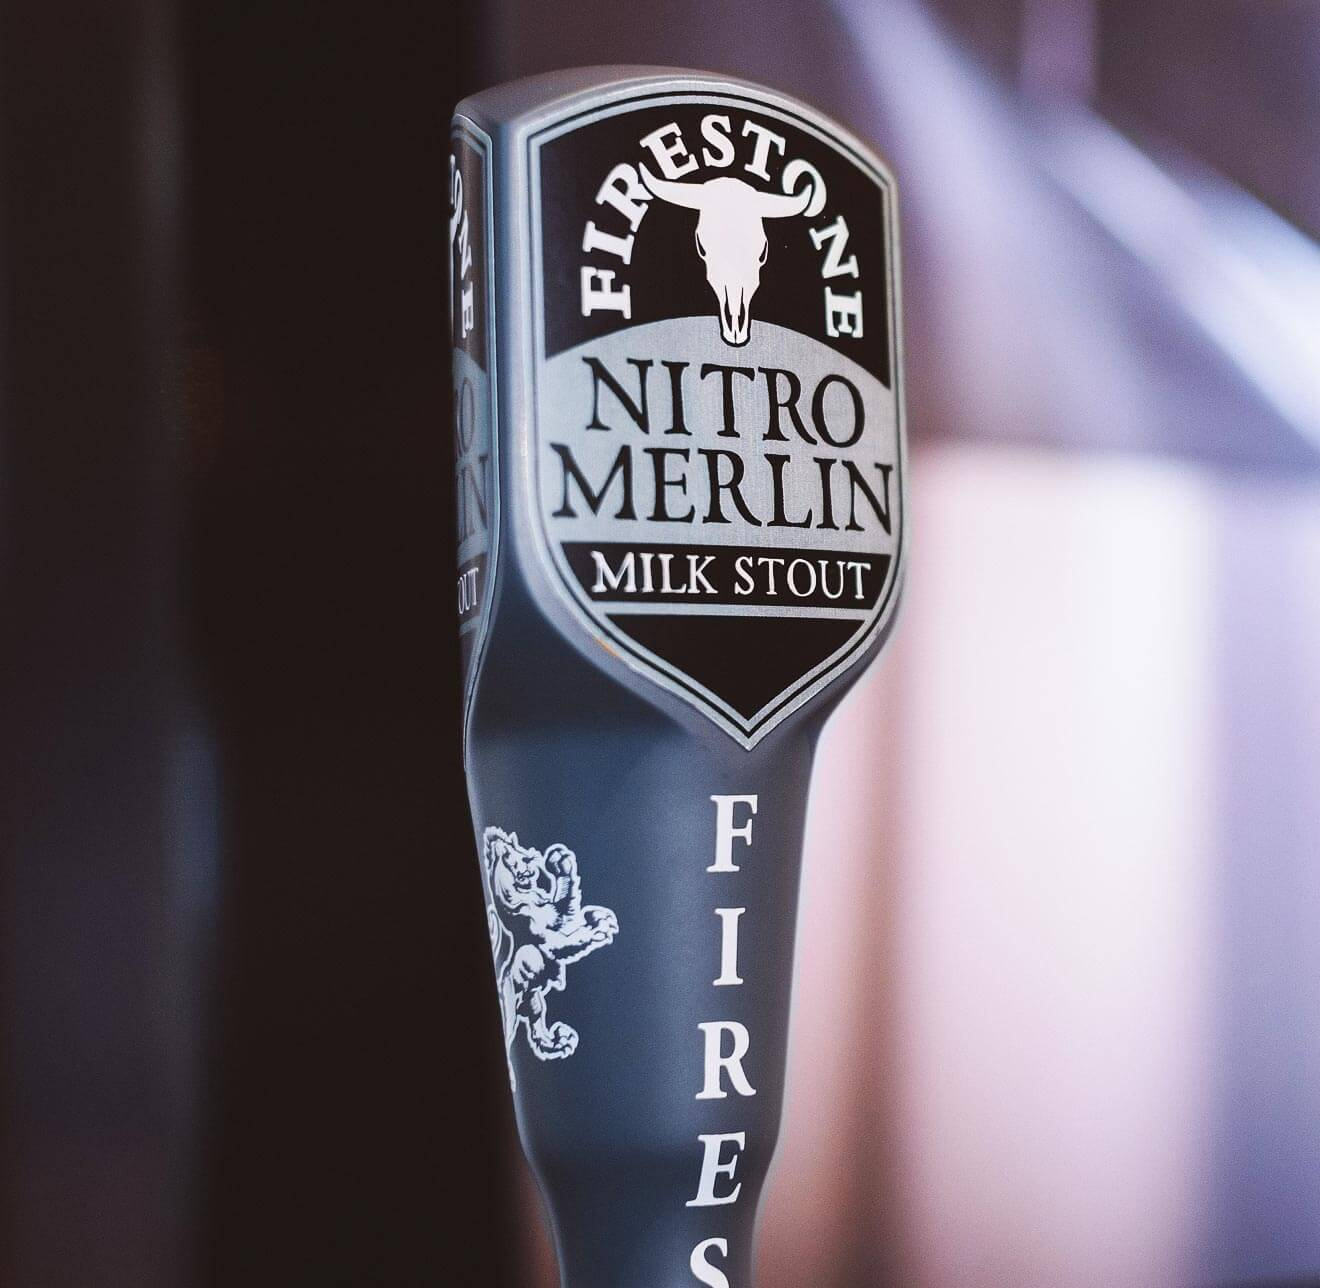 Nitro Merlin Milk Stout Released and on tap